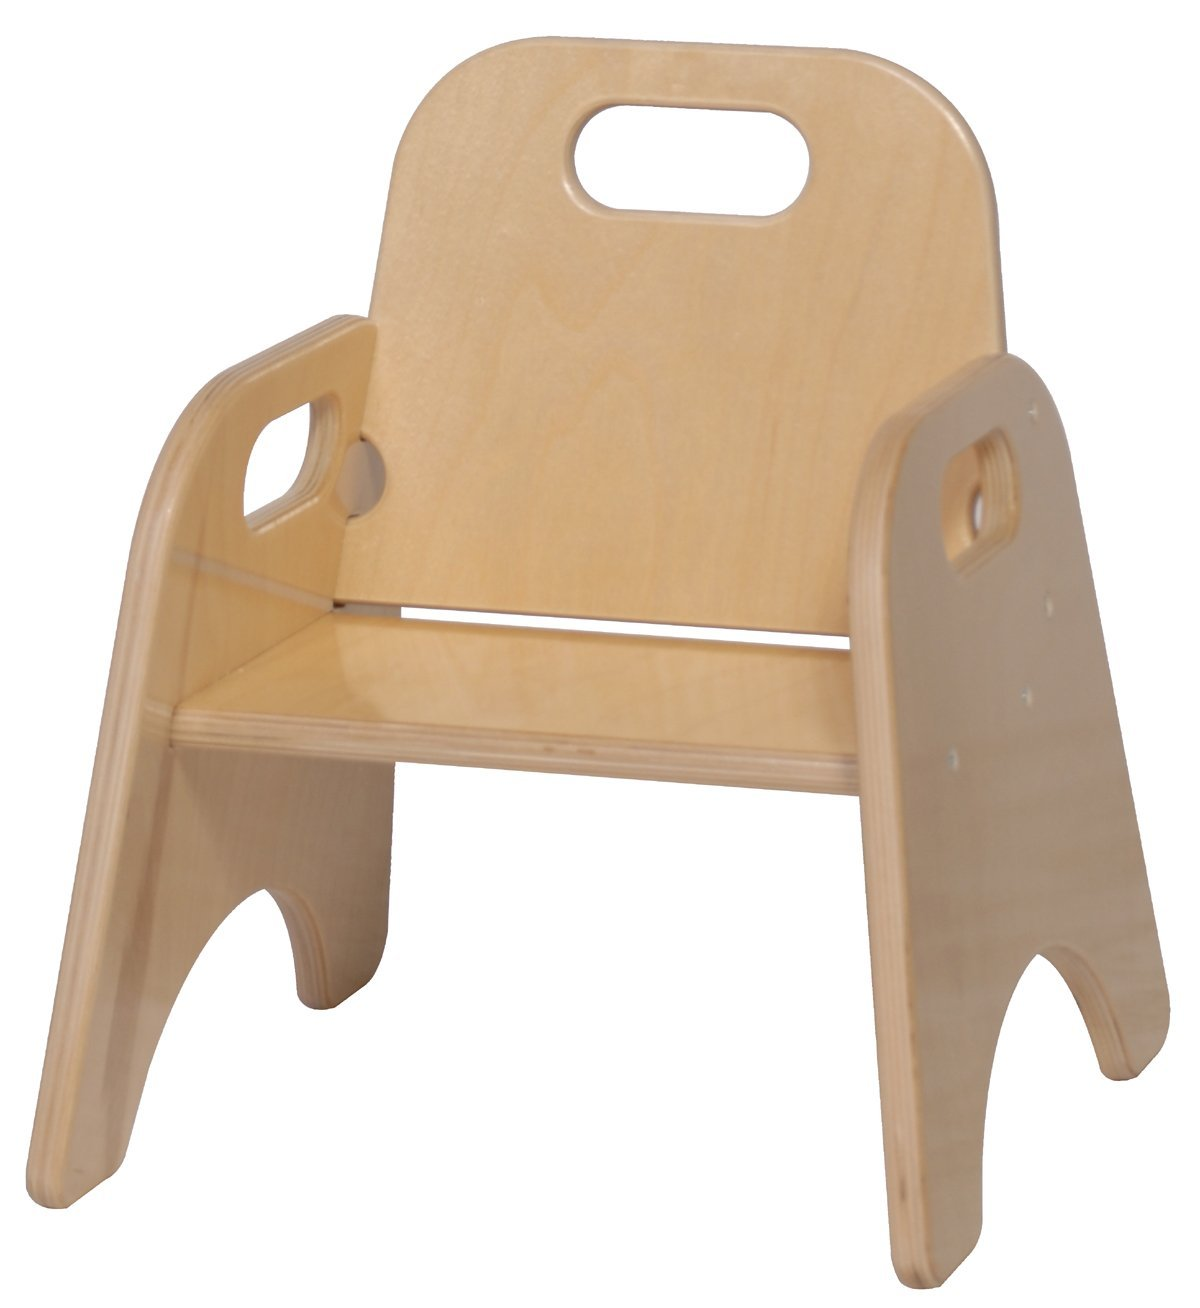 amazon.com: steffy wood products 7-inch toddler chair: kitchen u0026 dining QSEOAJV